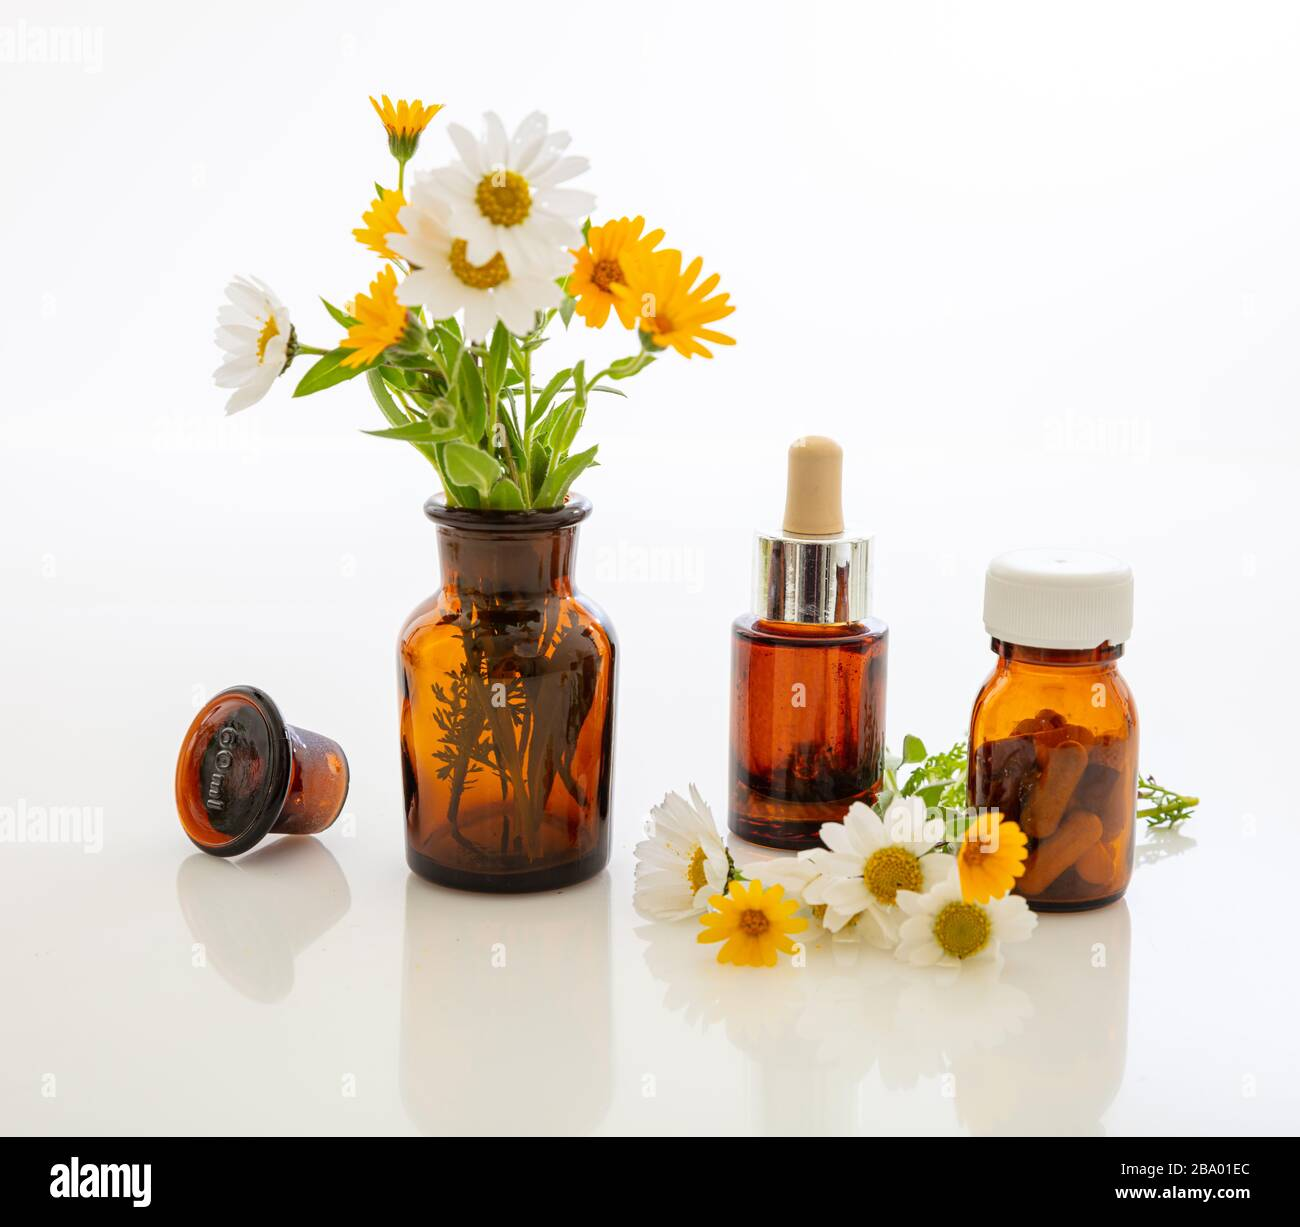 Alternative herbal medicine. Glass medical bottles and fresh wild flowers isolated against white background. Essential oil, cosmetics, medicine contai Stock Photo